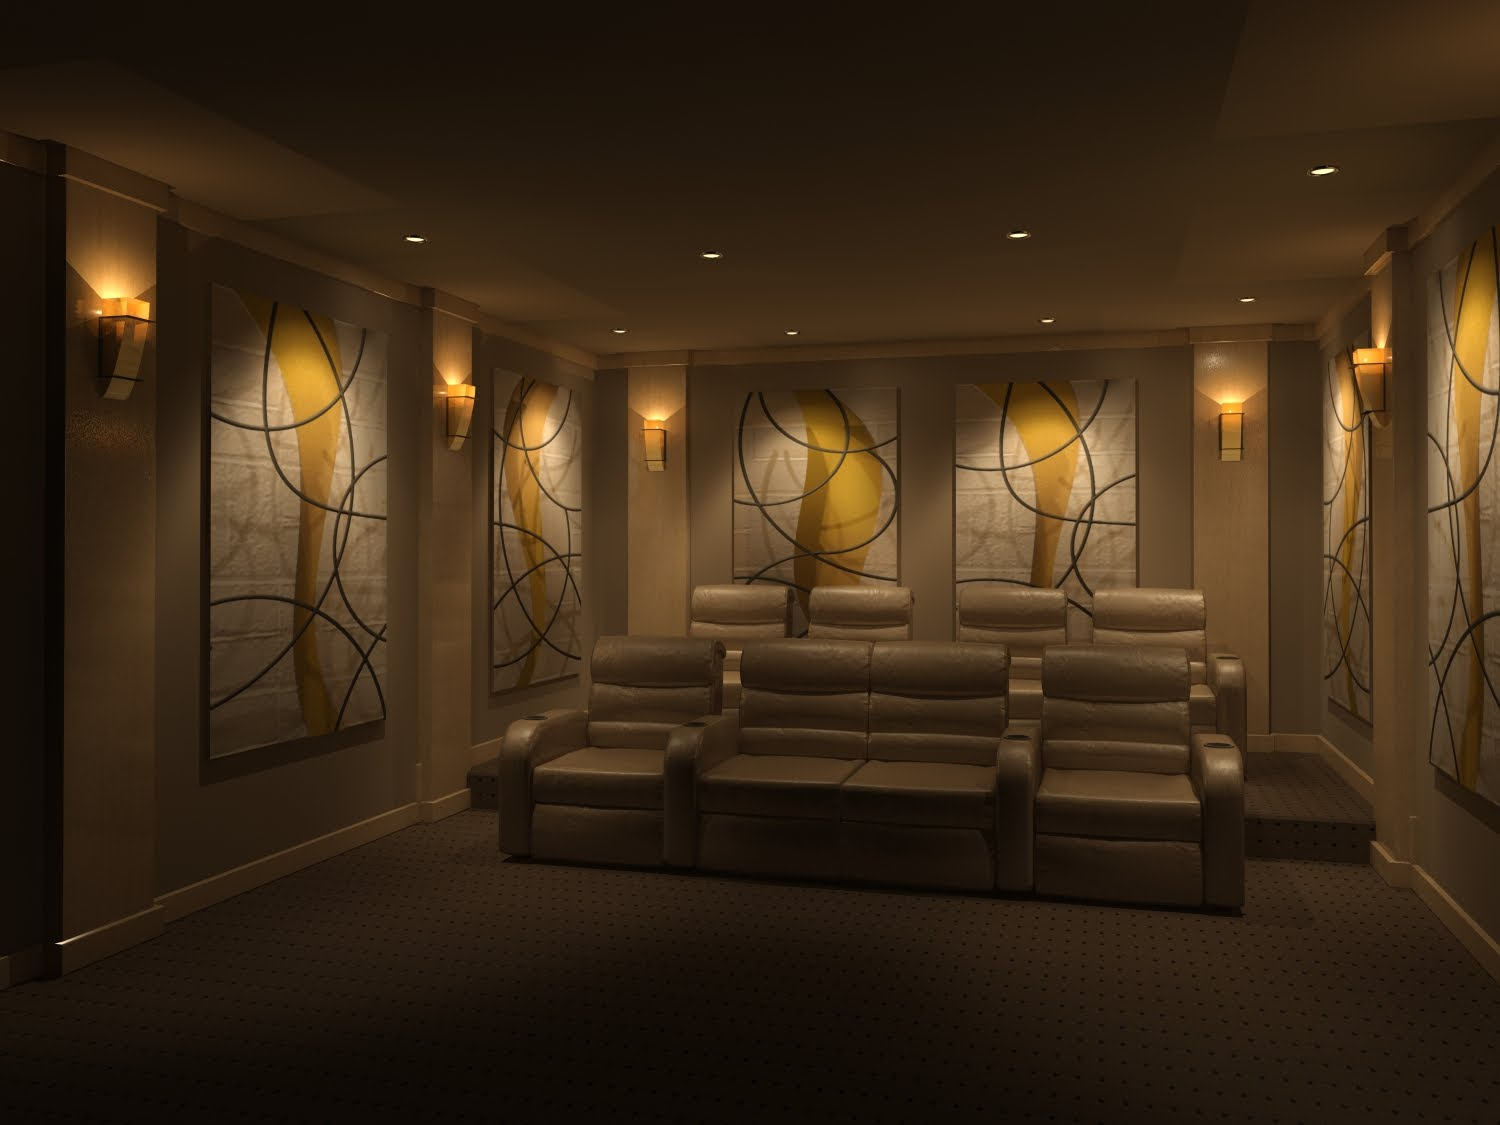 Home theater design and beyond by 3 d squared inc home theater room - Home theater room design ideas ...